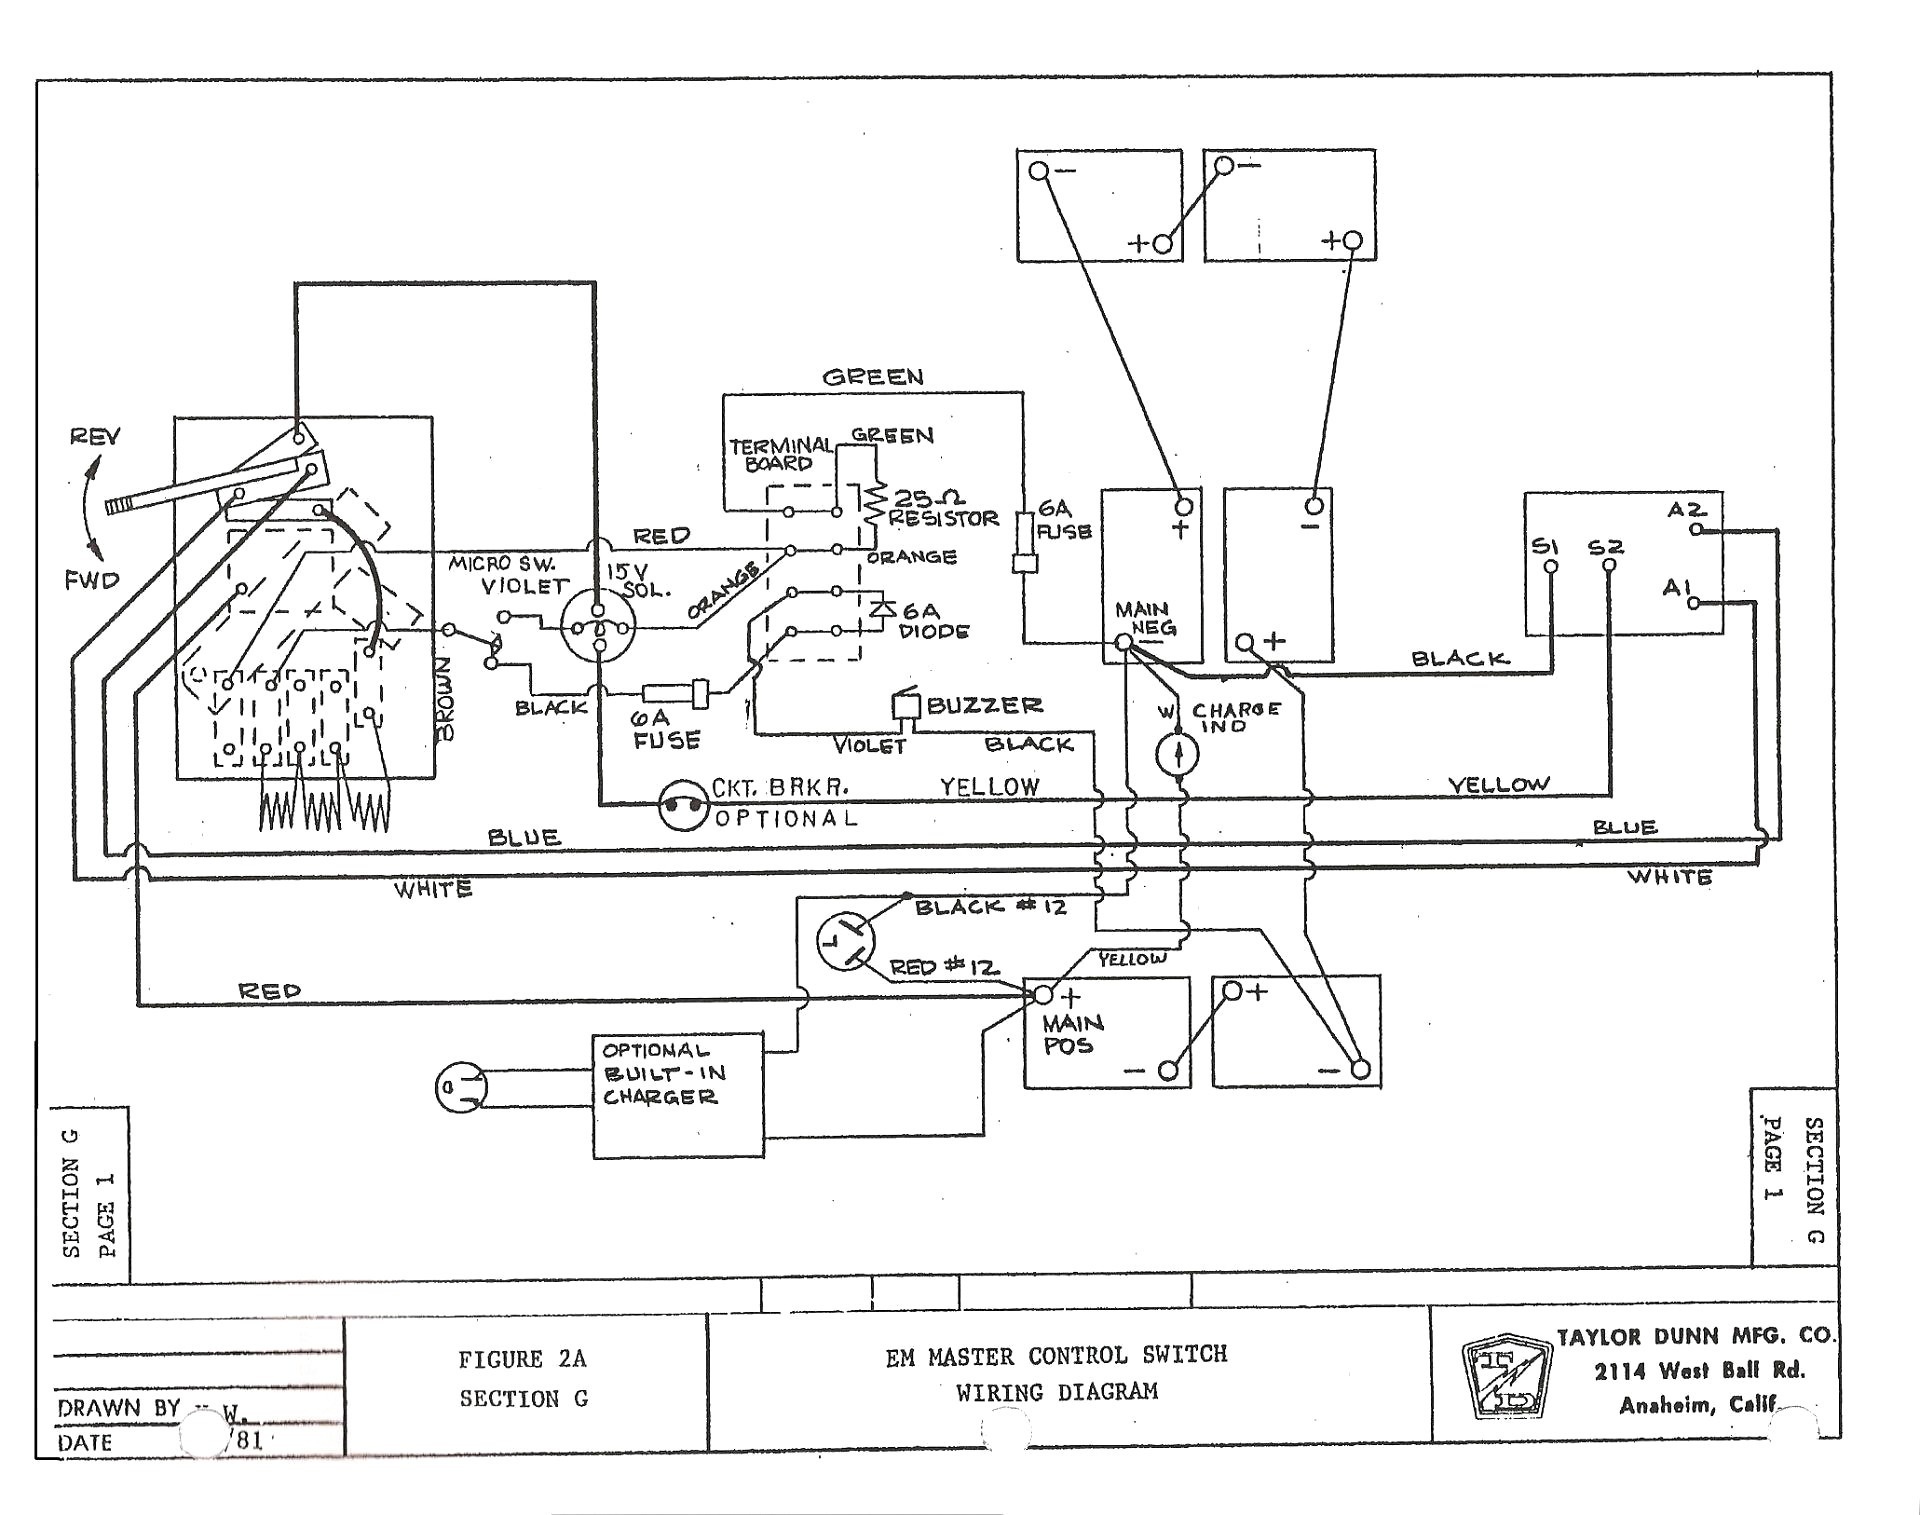 diagram] 2000 ez go txt wiring diagram full version hd quality wiring  diagram - voicedatawiringnyct.drivefermierlyonnais.fr  voicedatawiringnyct.drivefermierlyonnais.fr